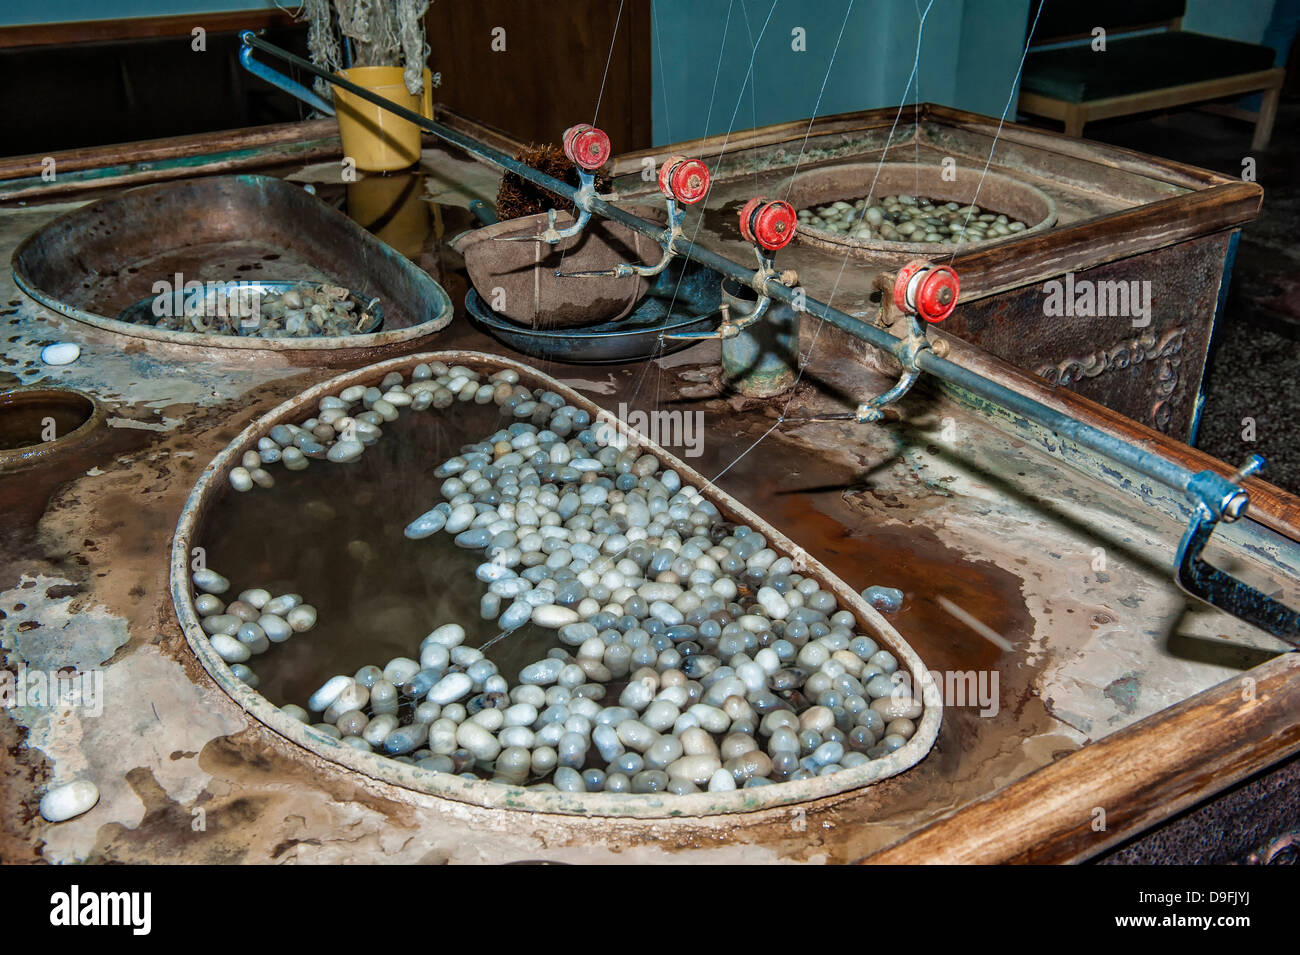 Extraction of silk filaments from cocoons in an alkaline bath, Cappadocia, Anatolia, Turkey Minor, Eurasia - Stock Image